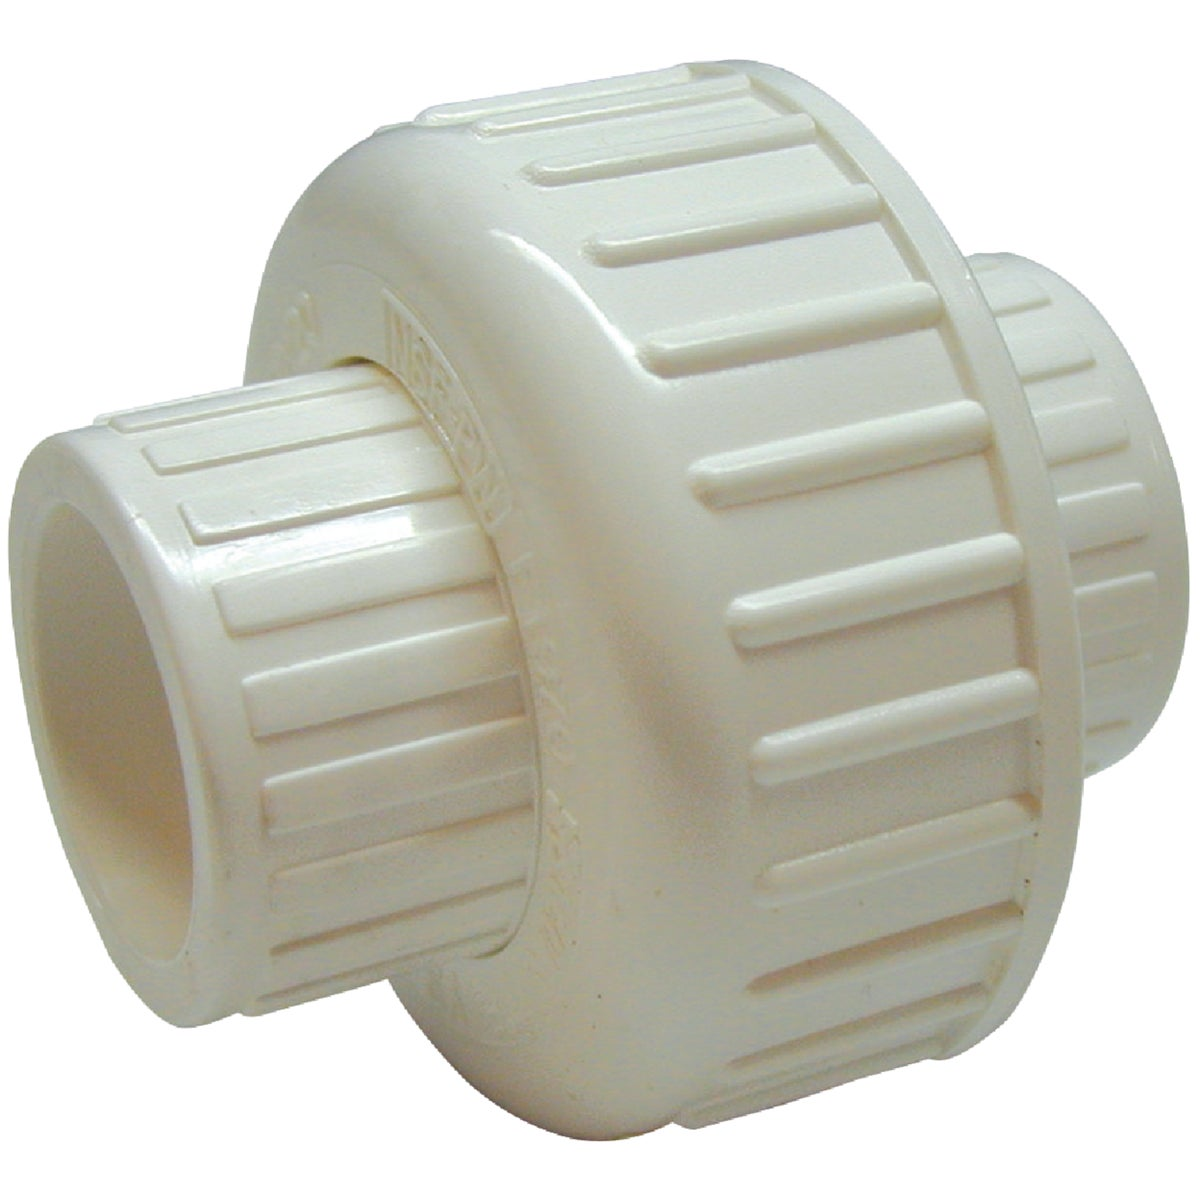 "WHT 3/4"" SXS PVC UNION - 164-634 by Mueller B K"